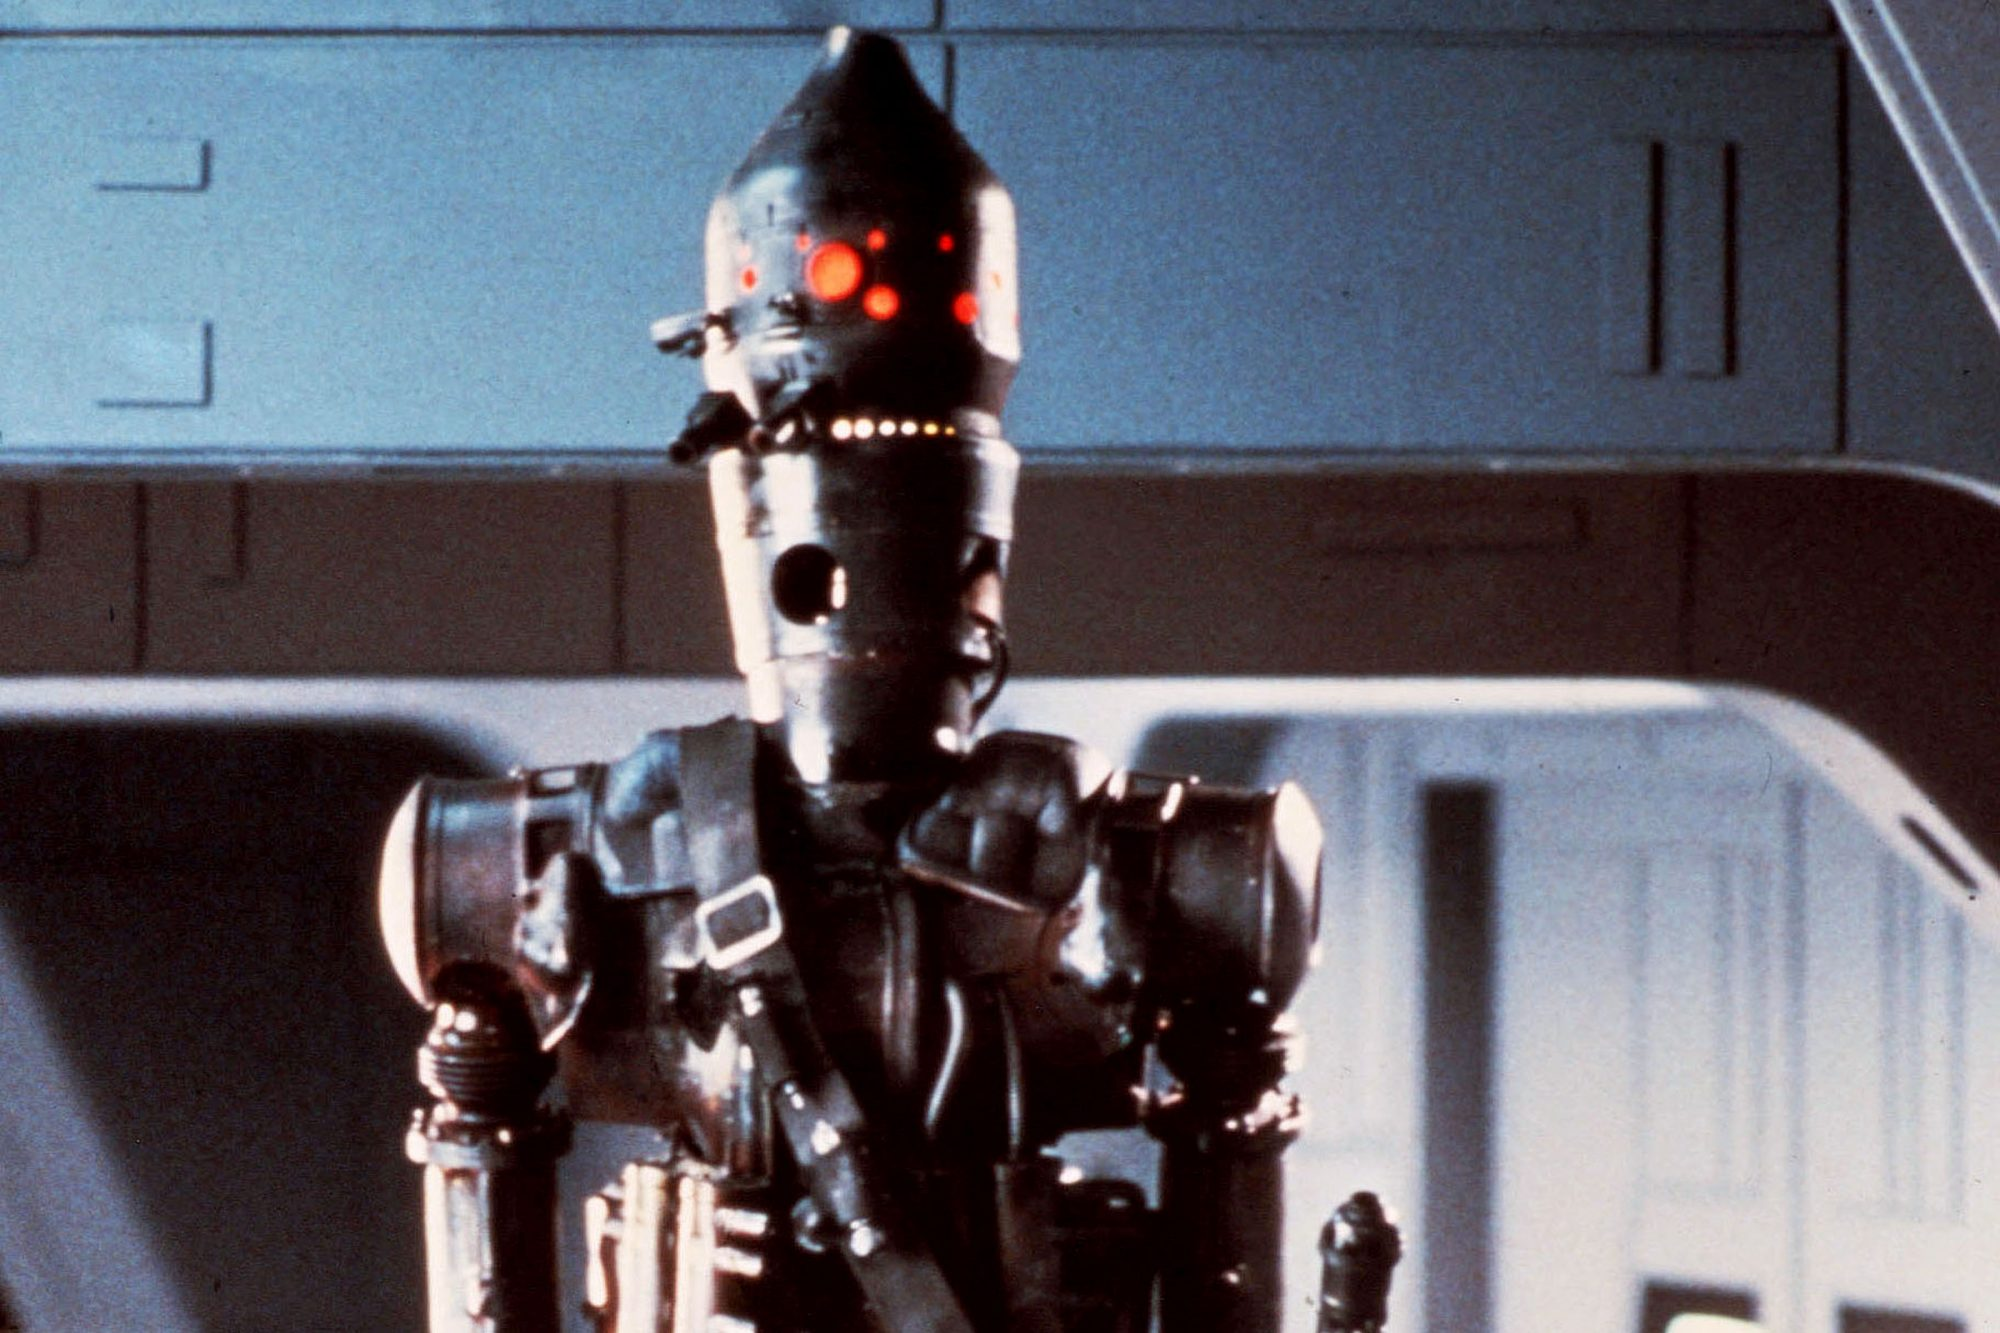 8. IG-88 (The Empire Strikes Back)